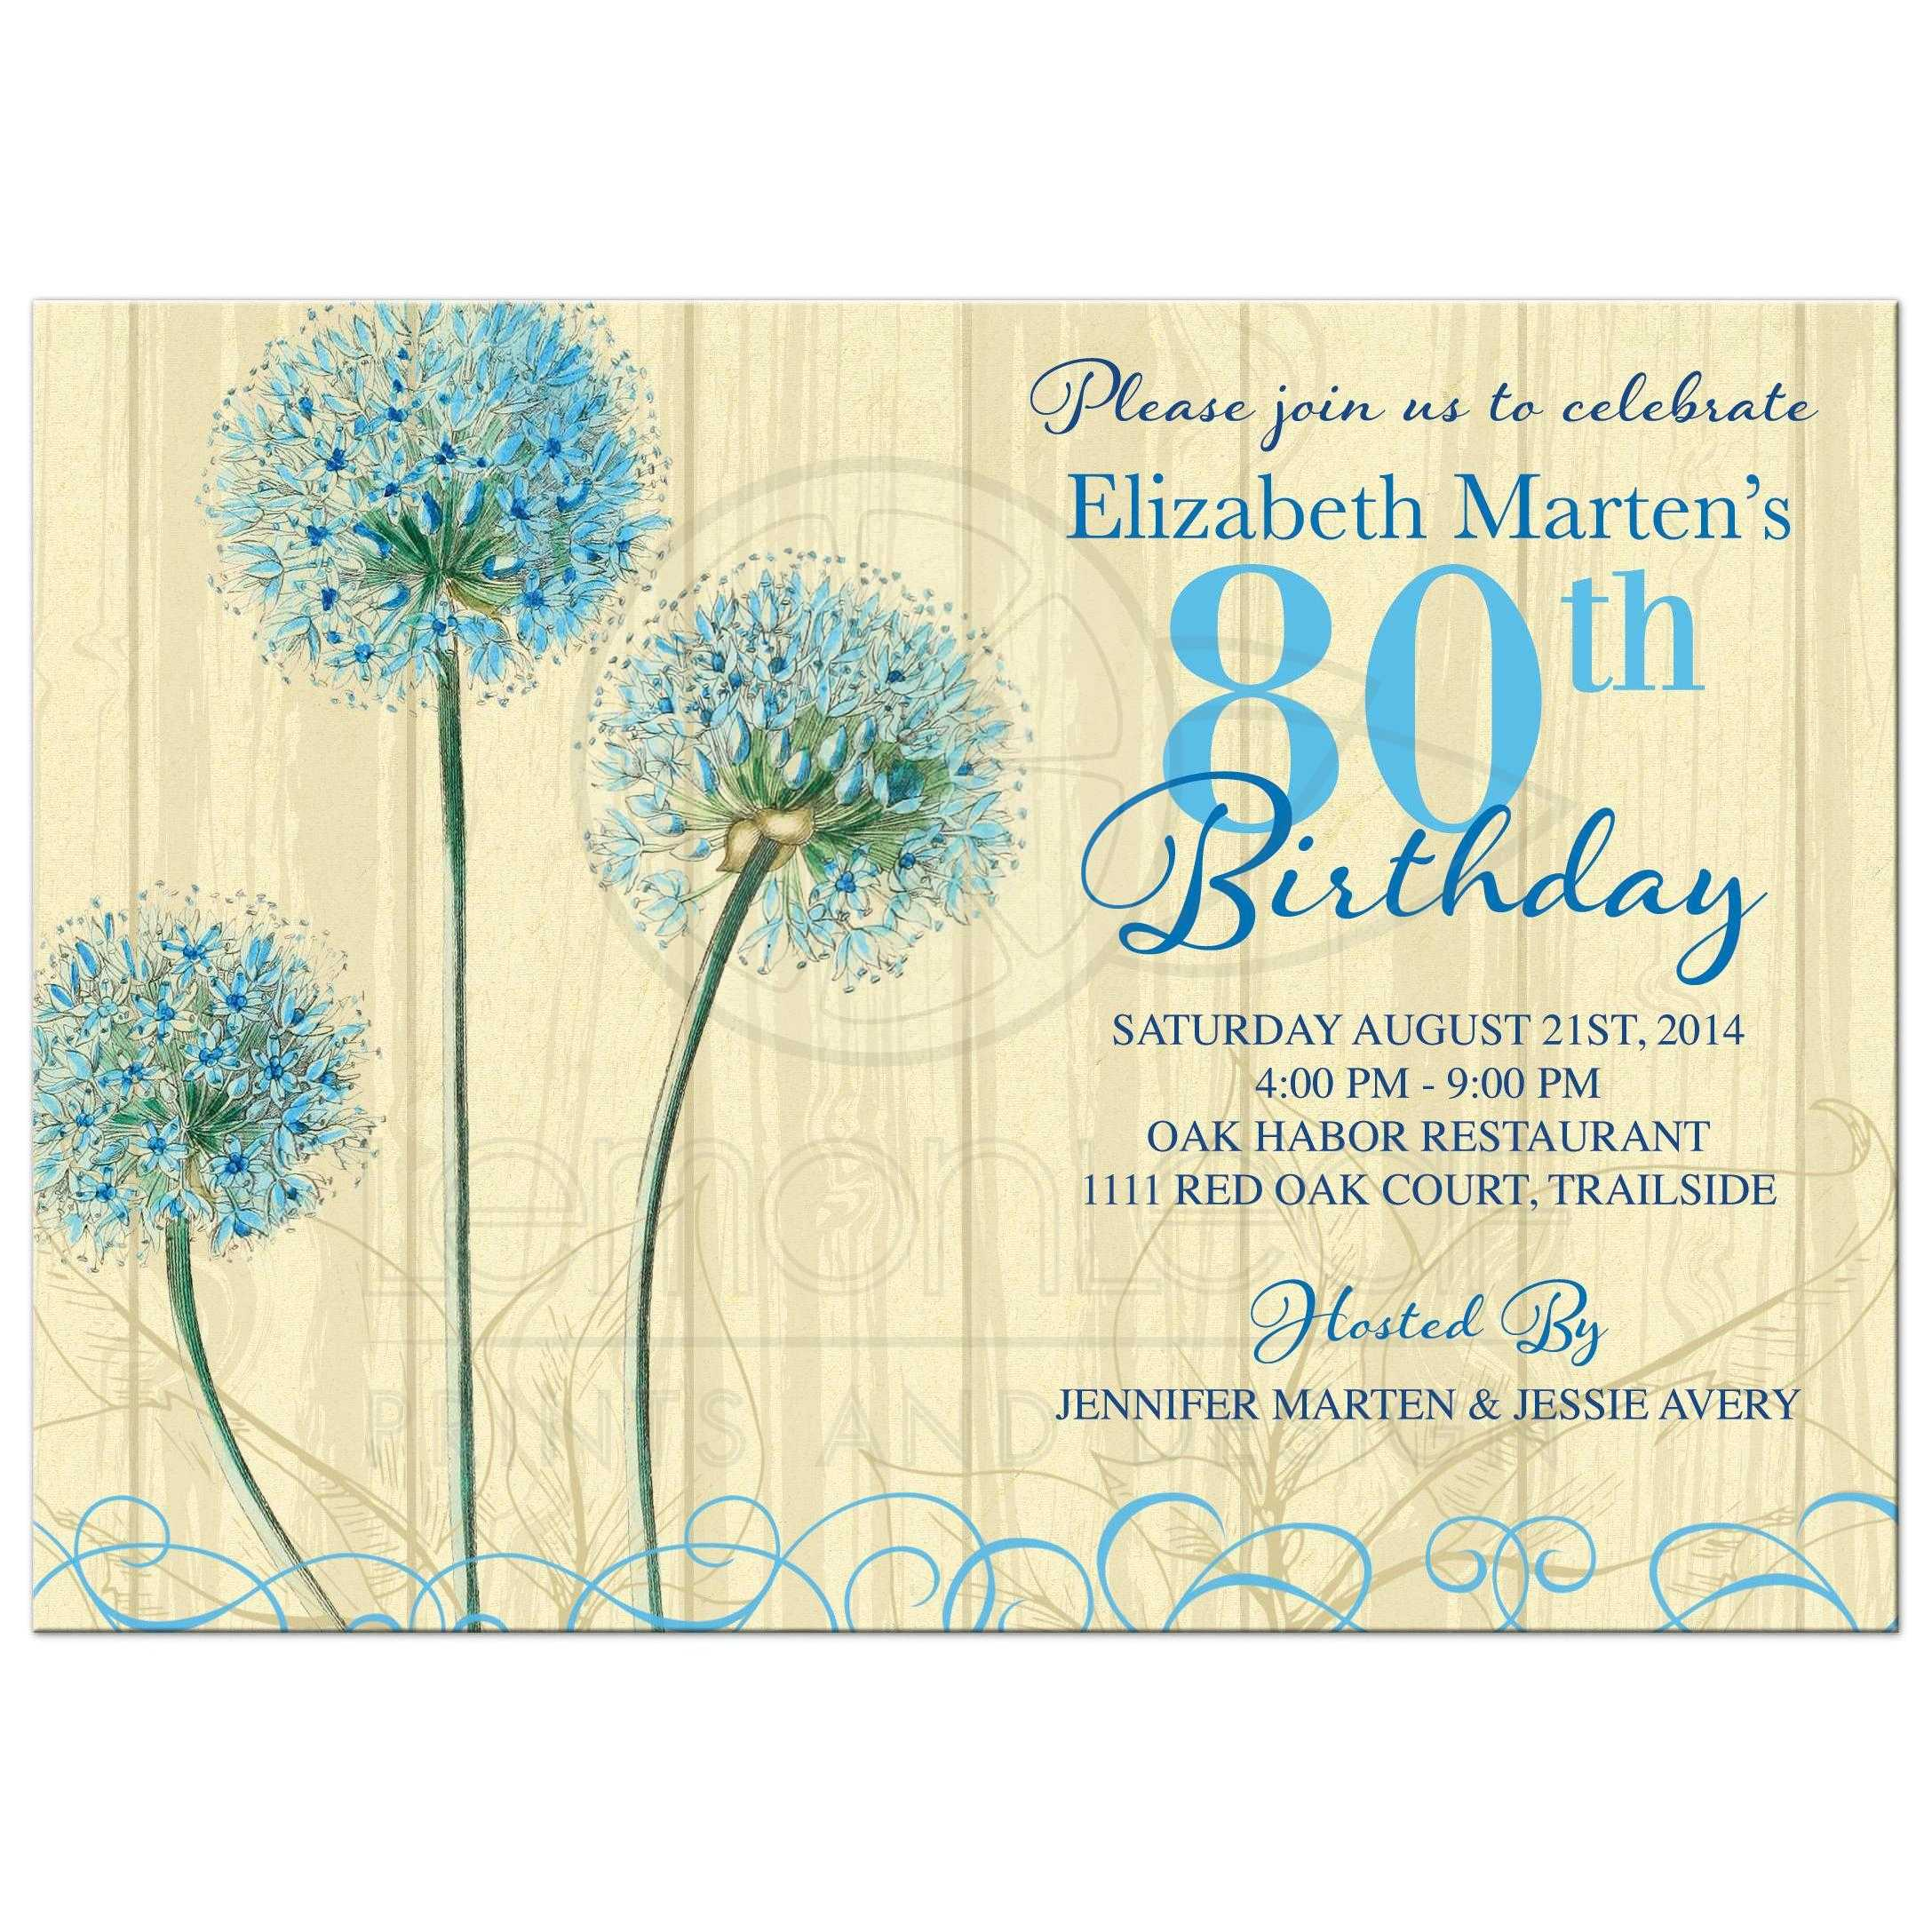 80th birthday invitation | vintage blue cream floral, Birthday invitations